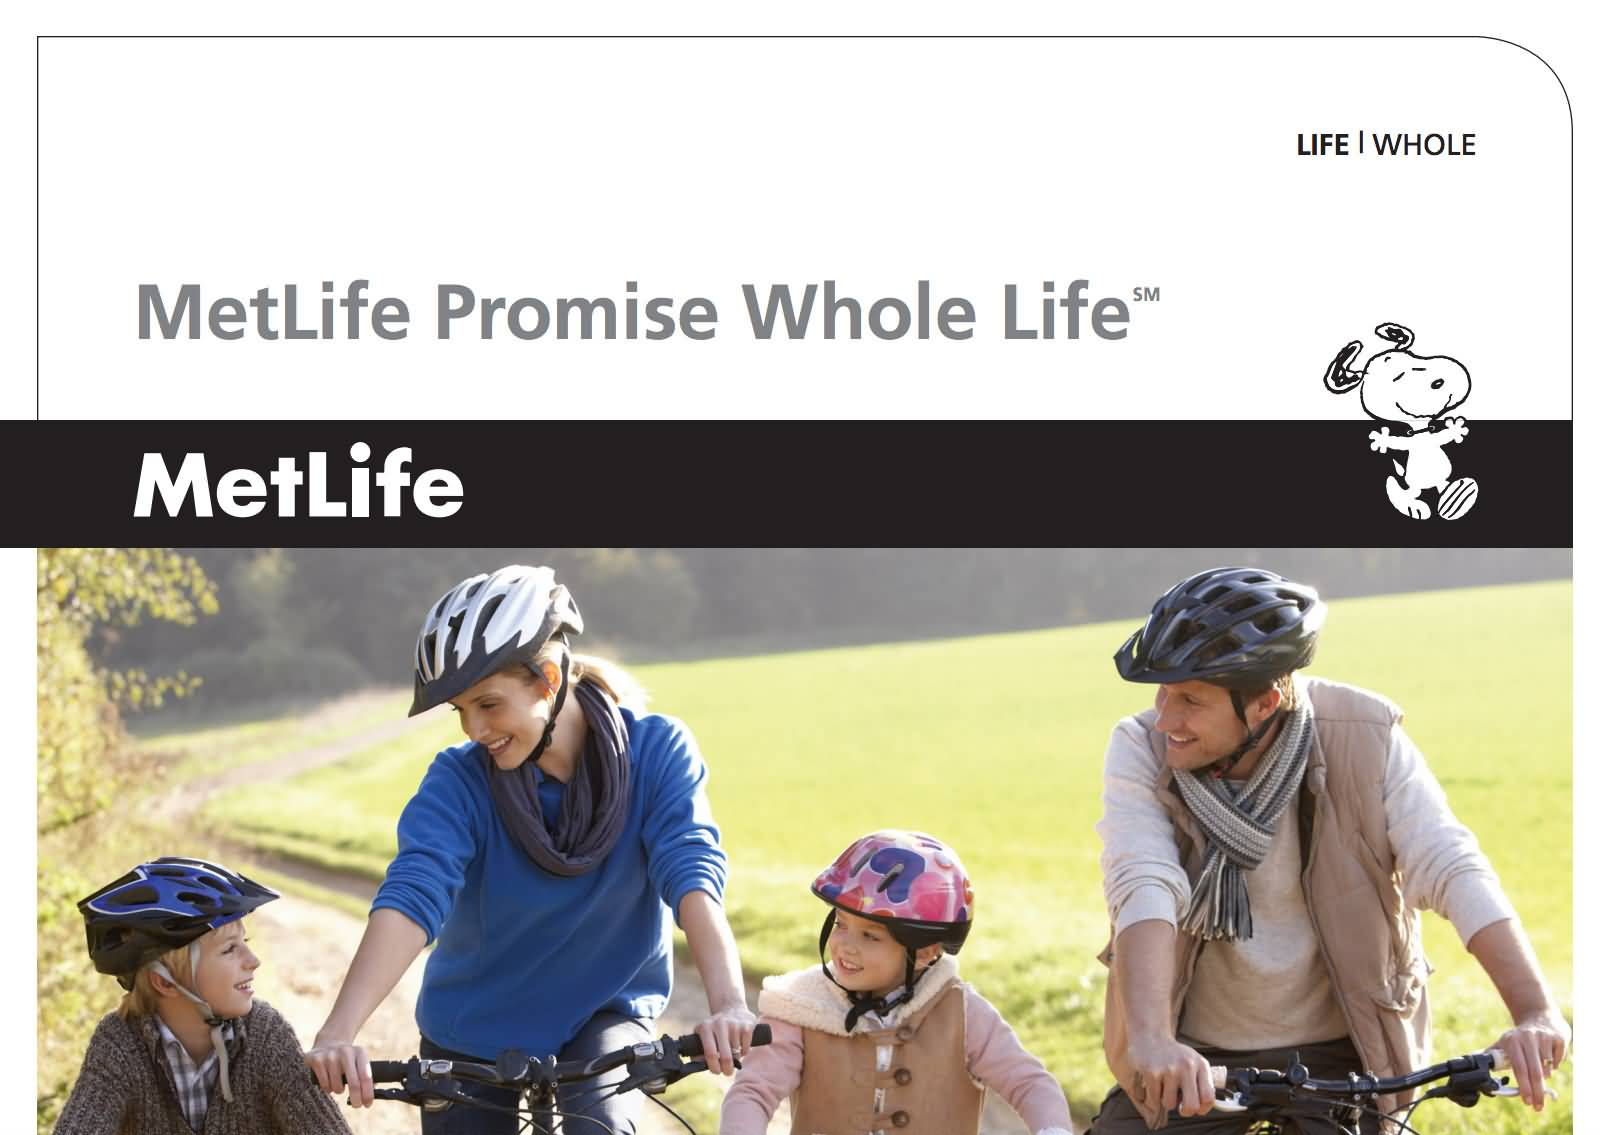 Full Life Insurance Quotes Metlife Whole Life Insurance Quotes 04  Quotesbae